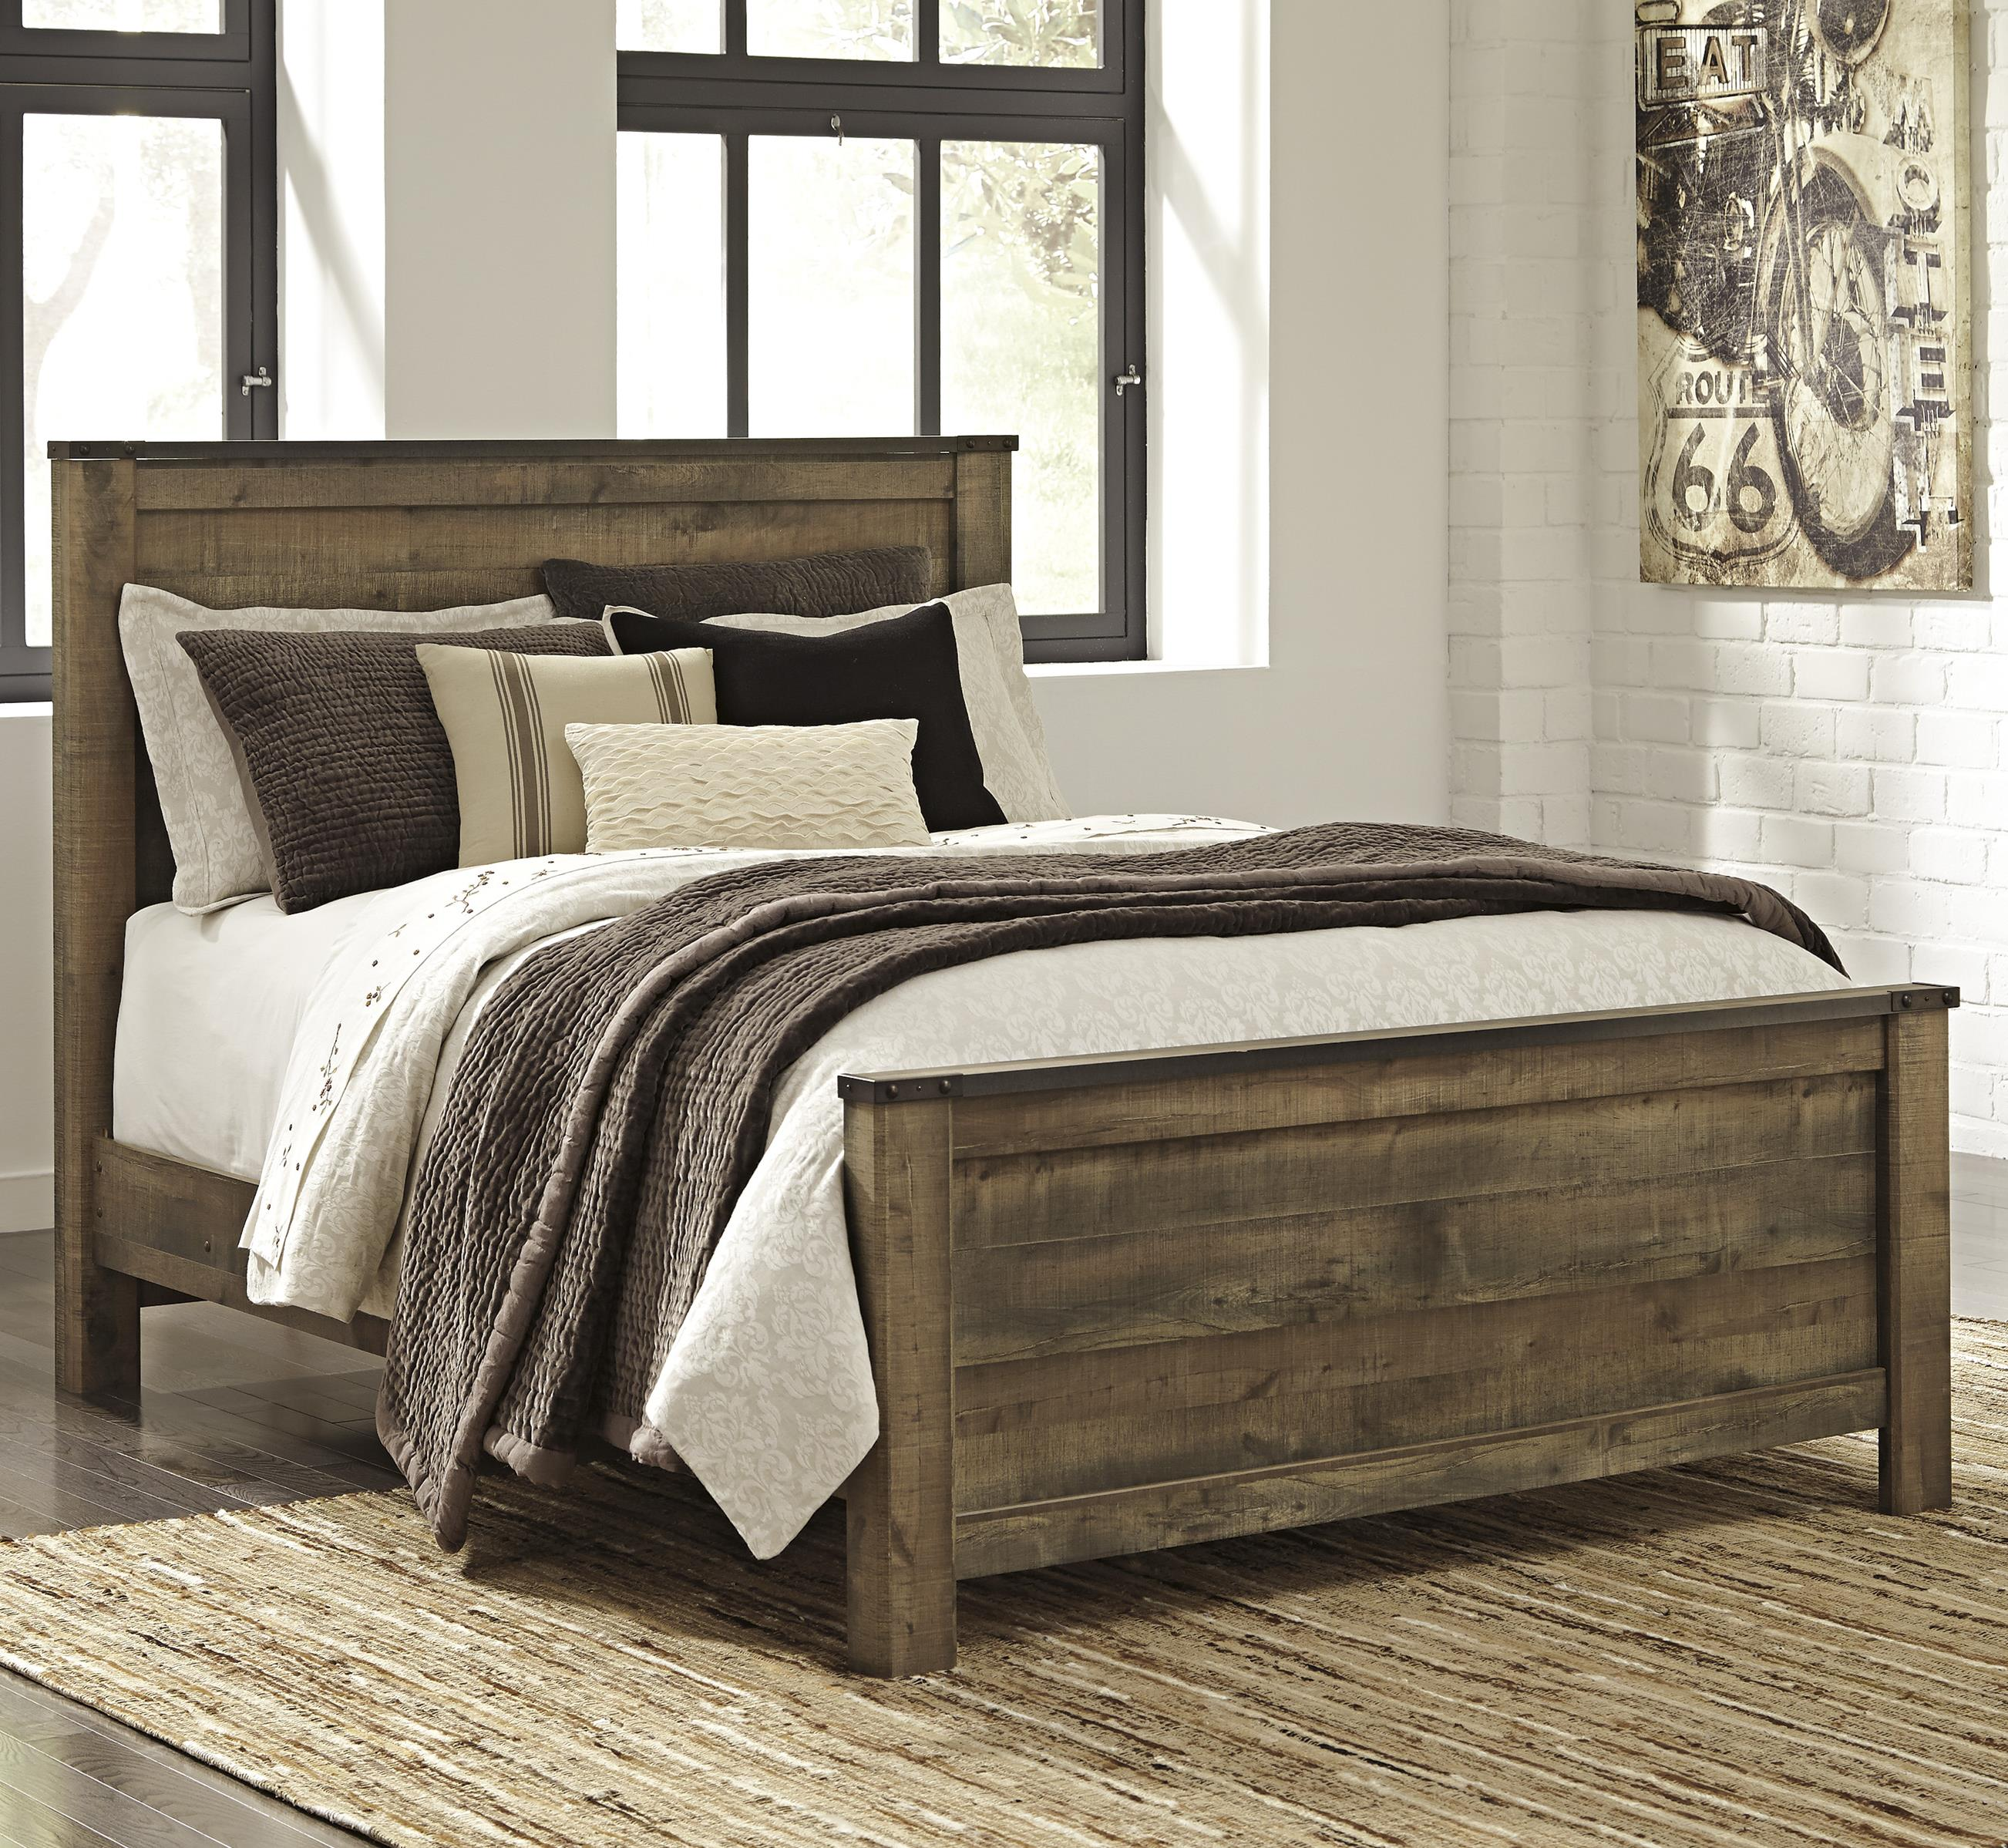 Signature design by ashley trinell rustic look queen panel for Bedroom ideas queen bed